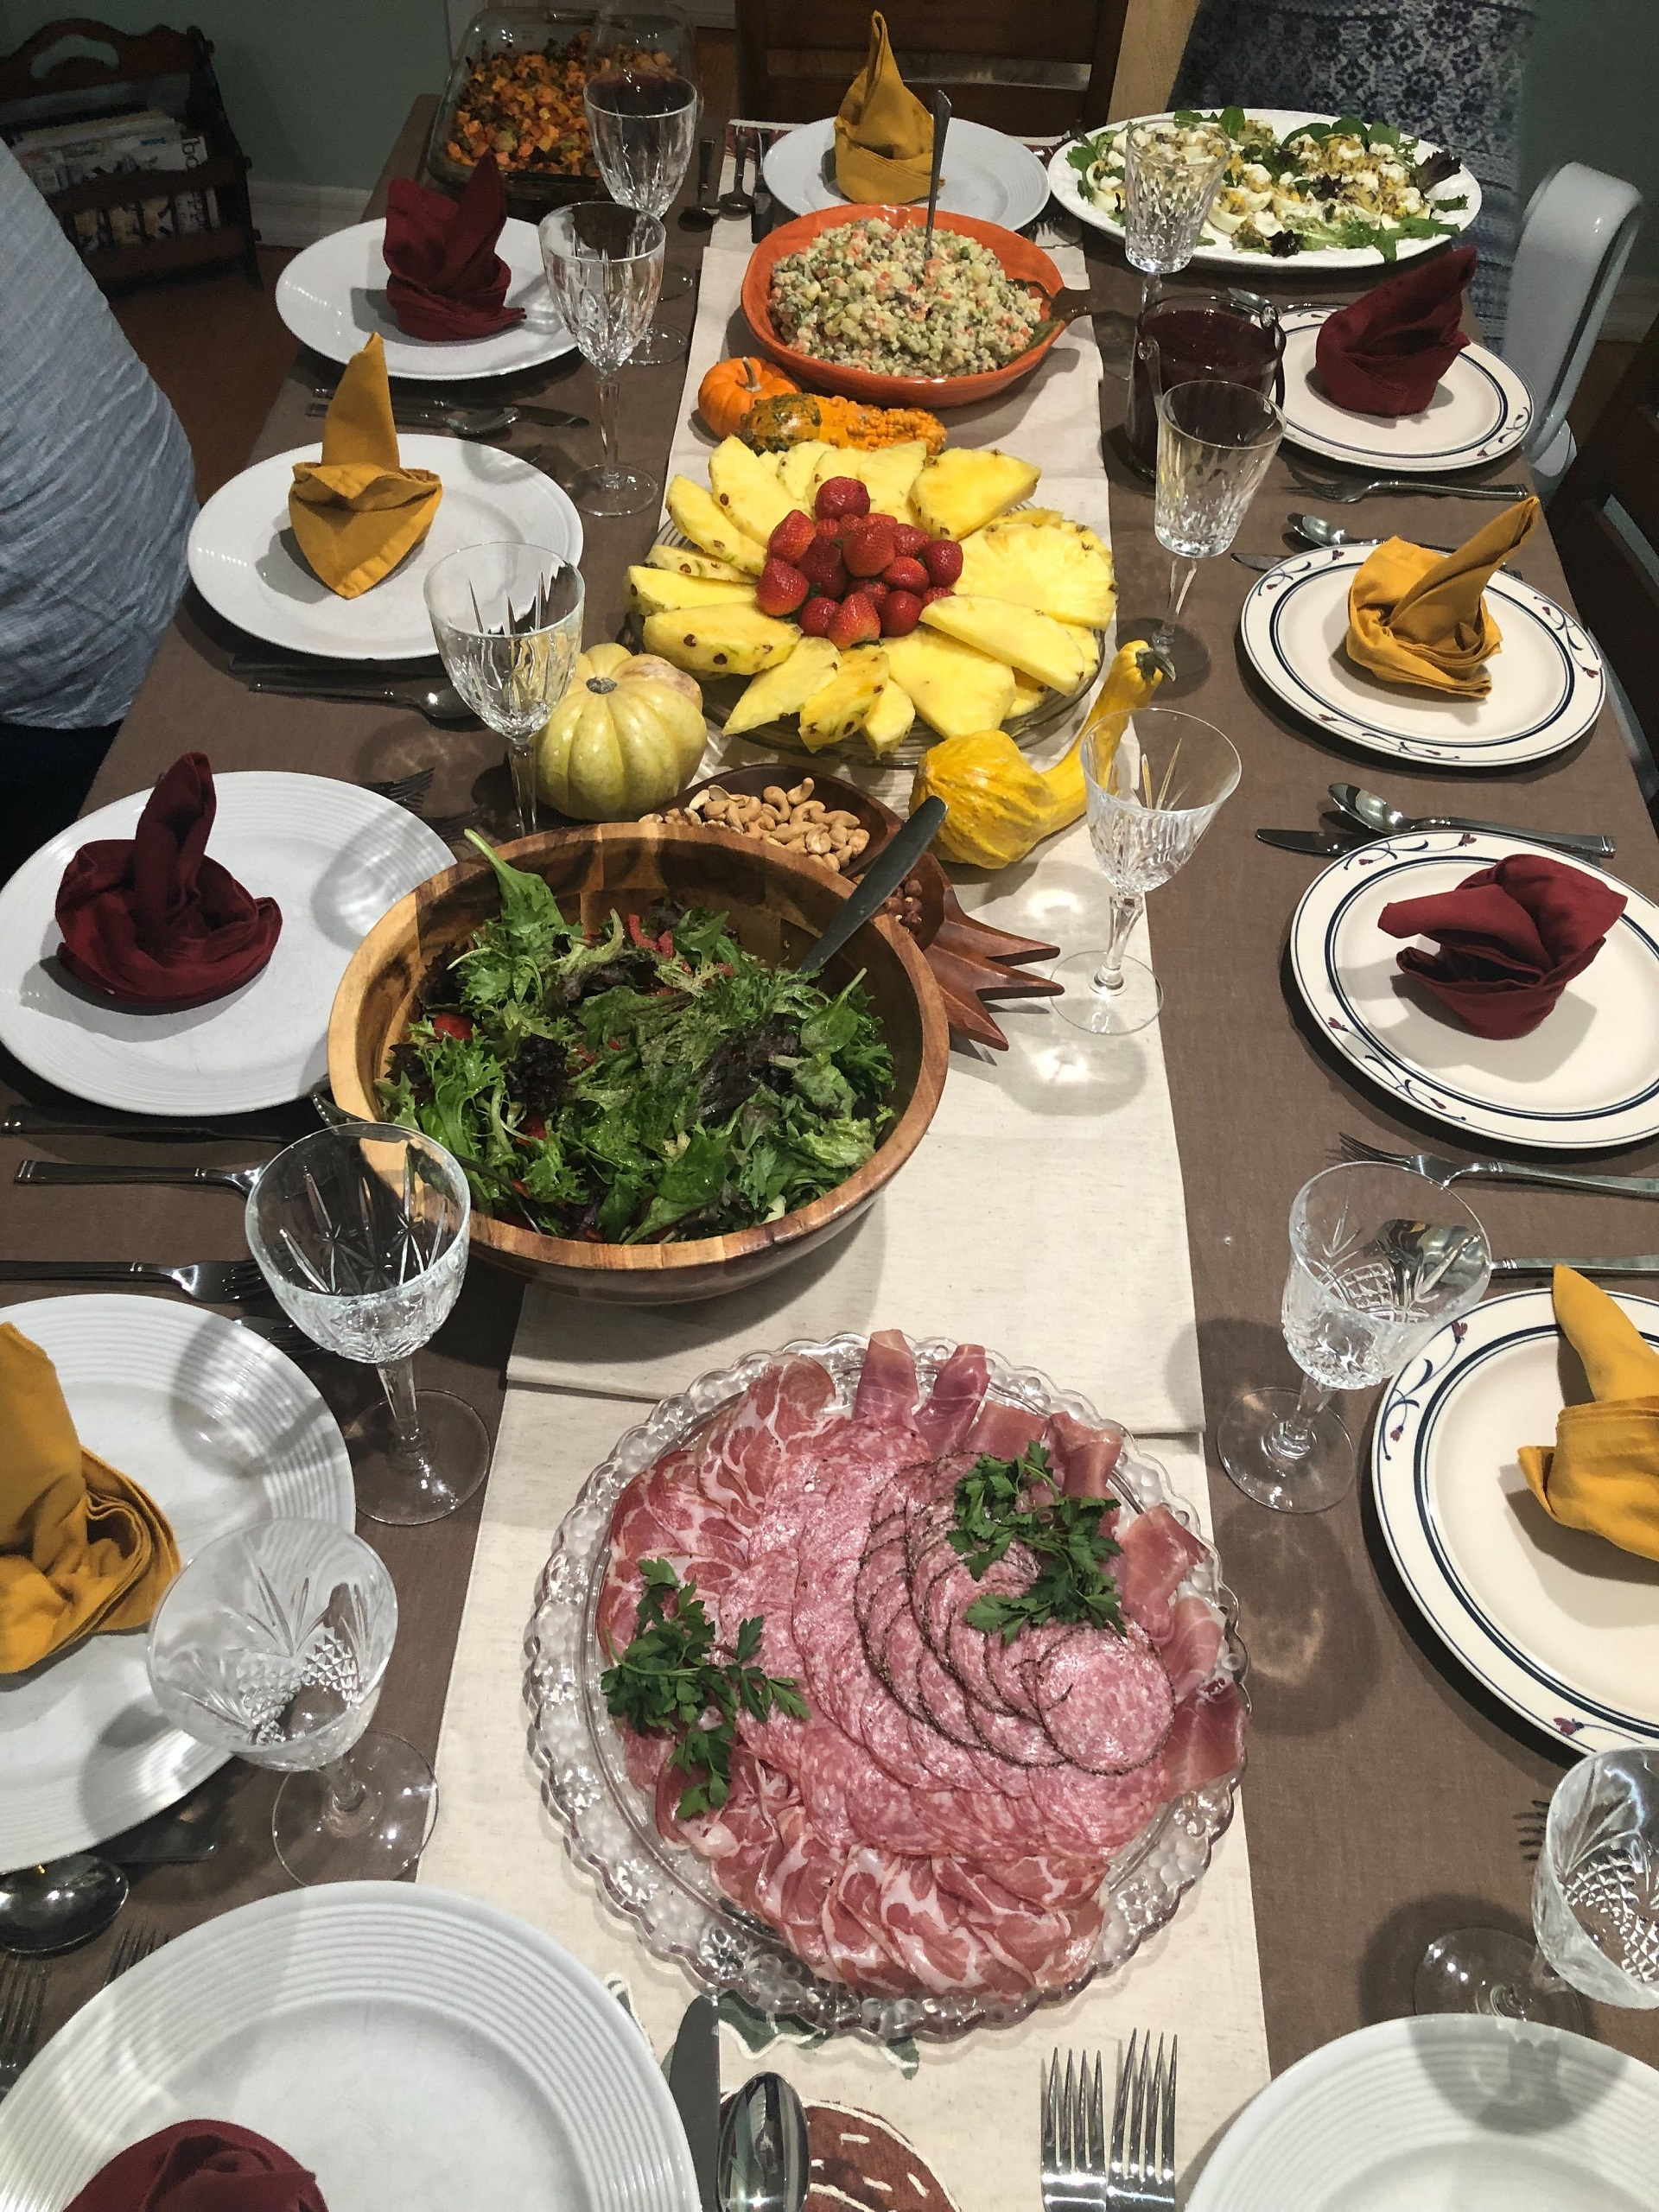 The spread at Masha Pershay's mother's house on Thanksgiving.